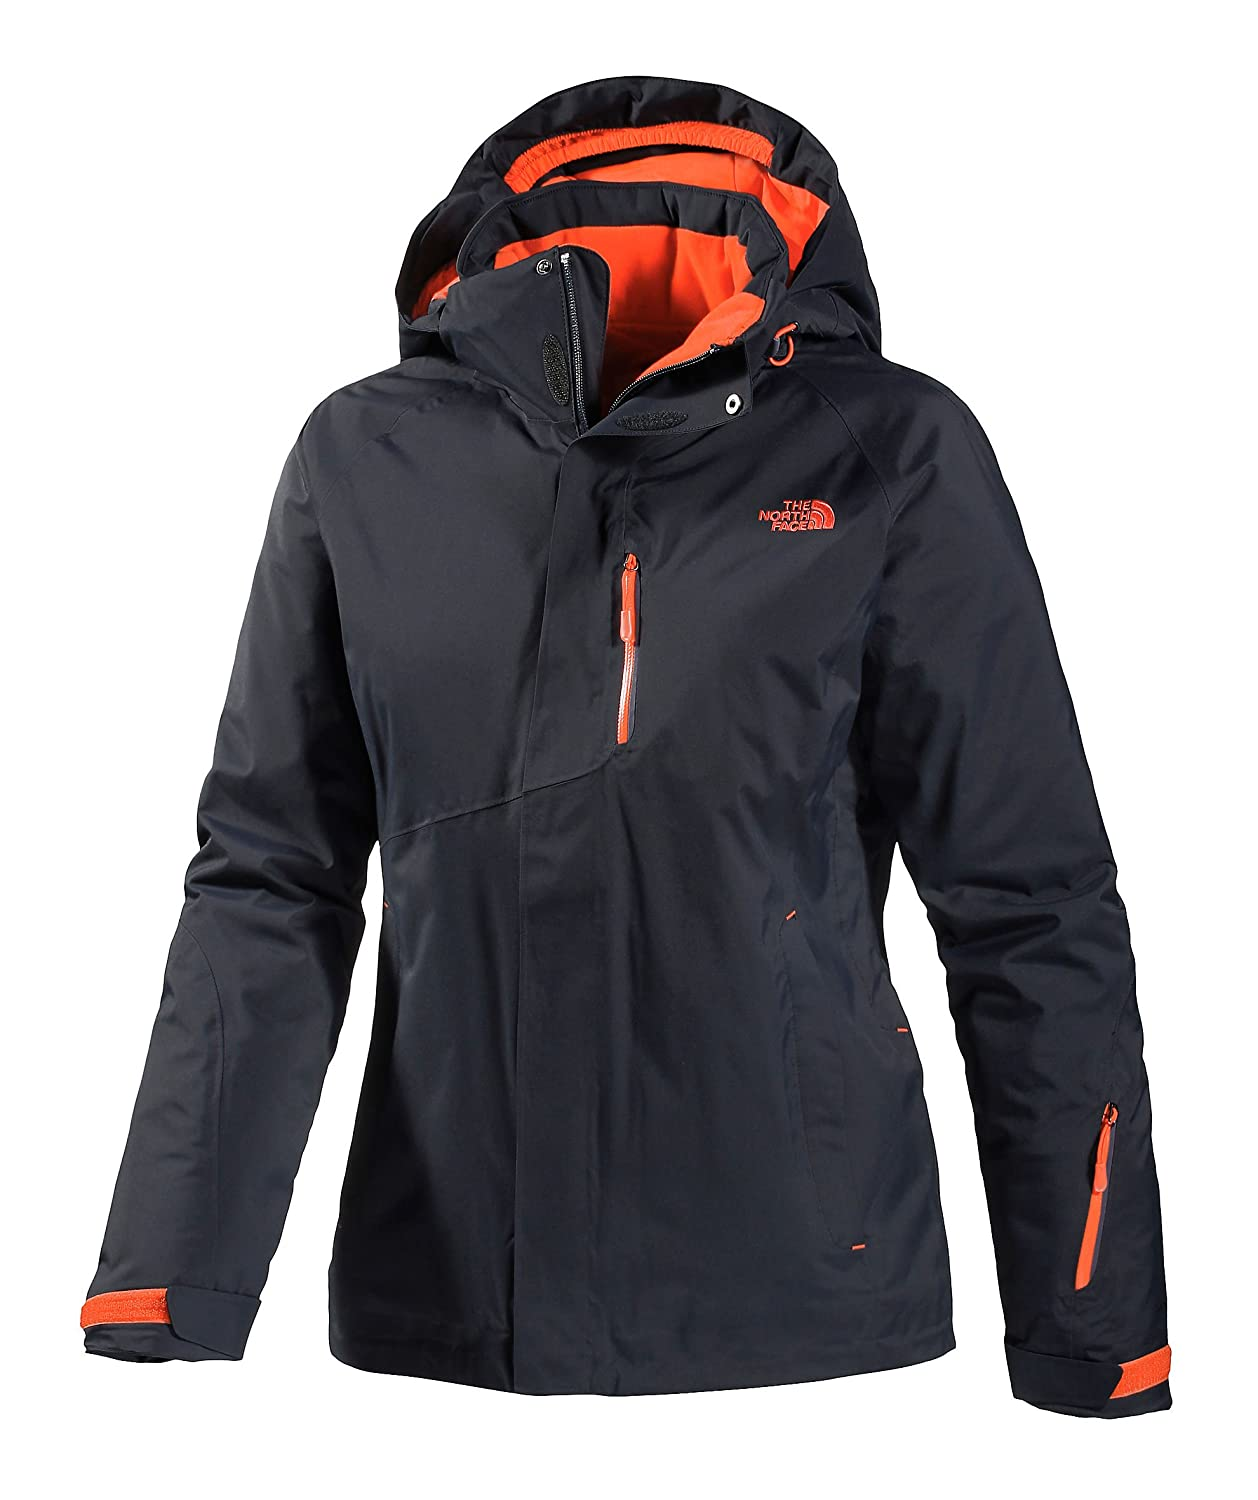 The North Face Damen Skijacke